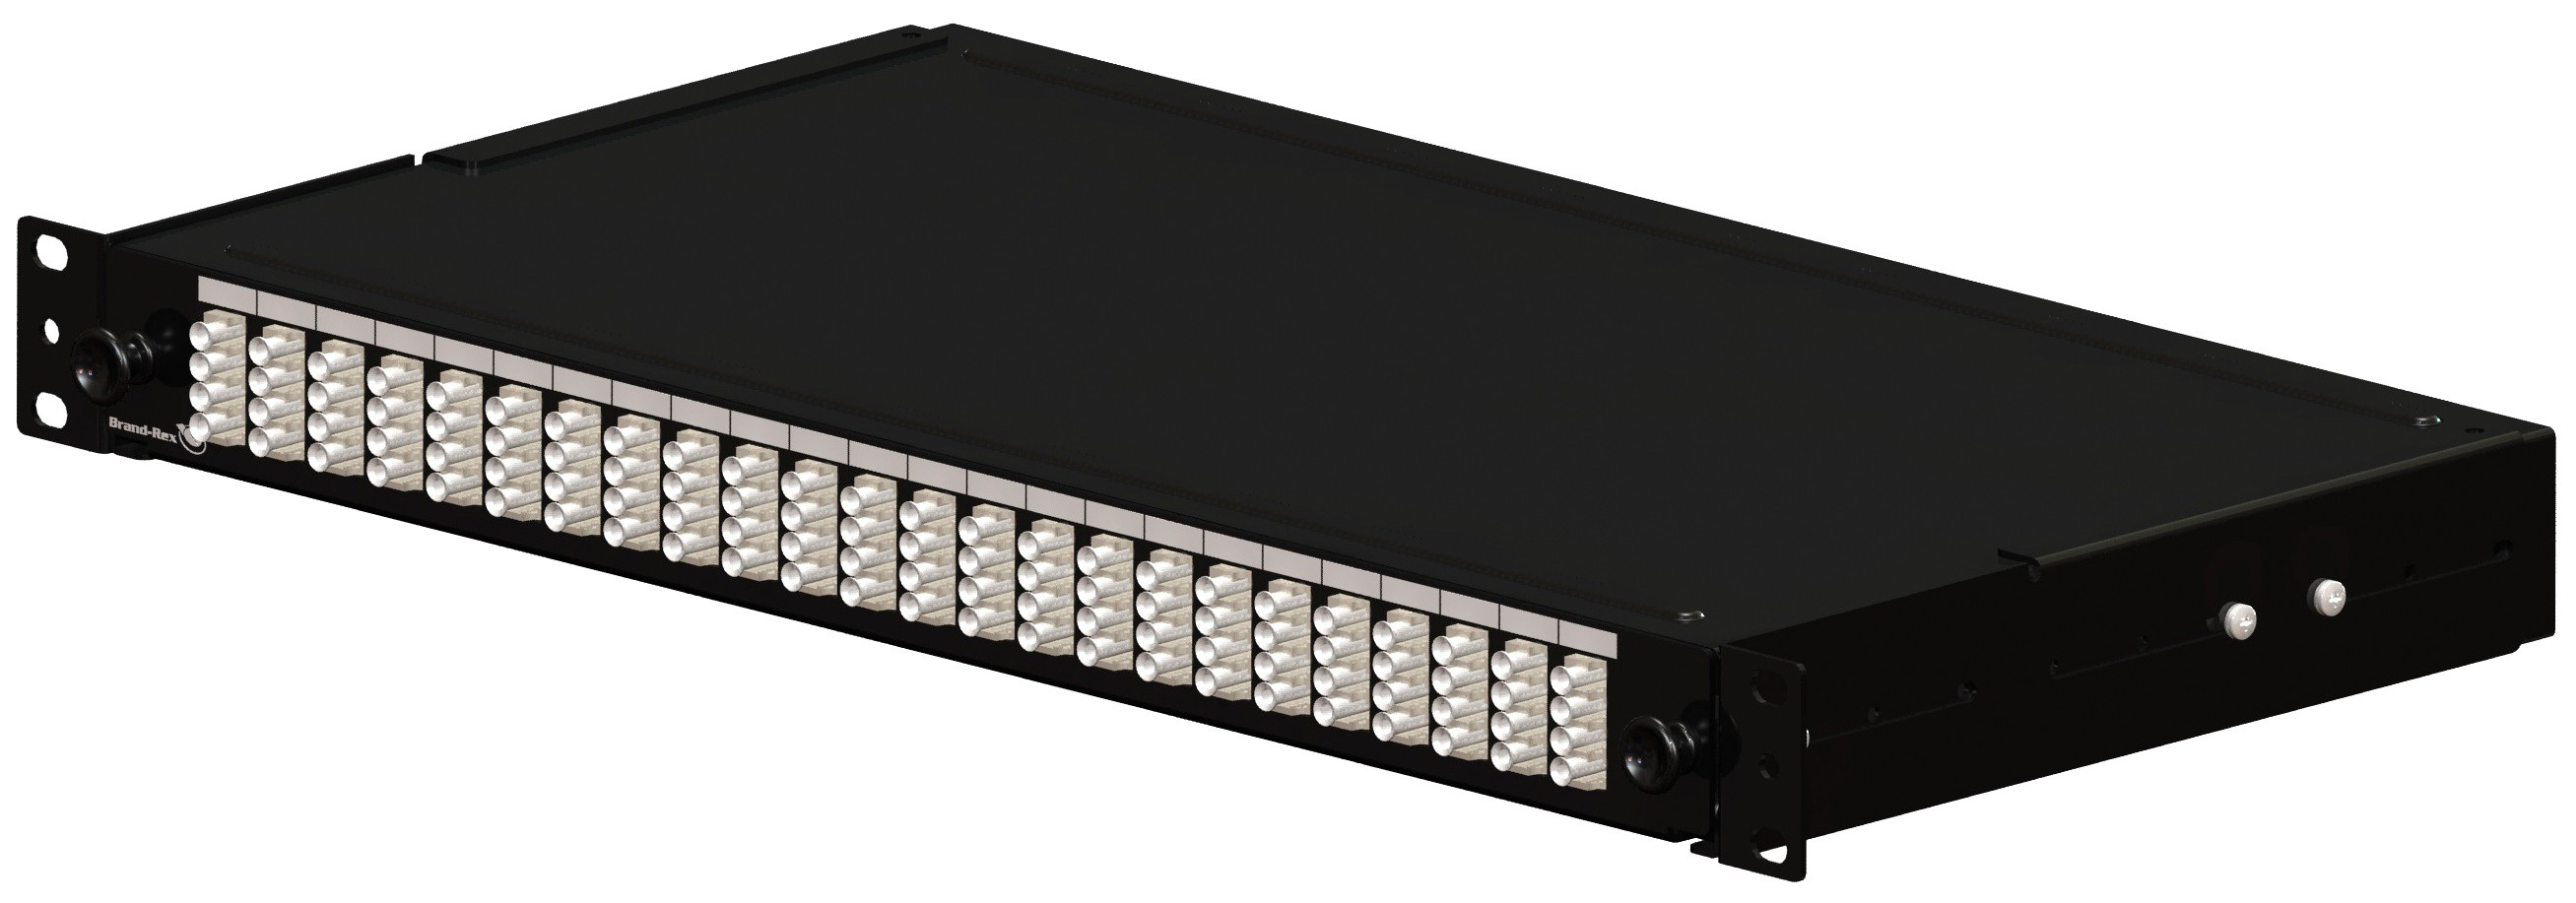 Brand-Rex Optical Panel loaded with 24 LC Duplex Singlemode adapters